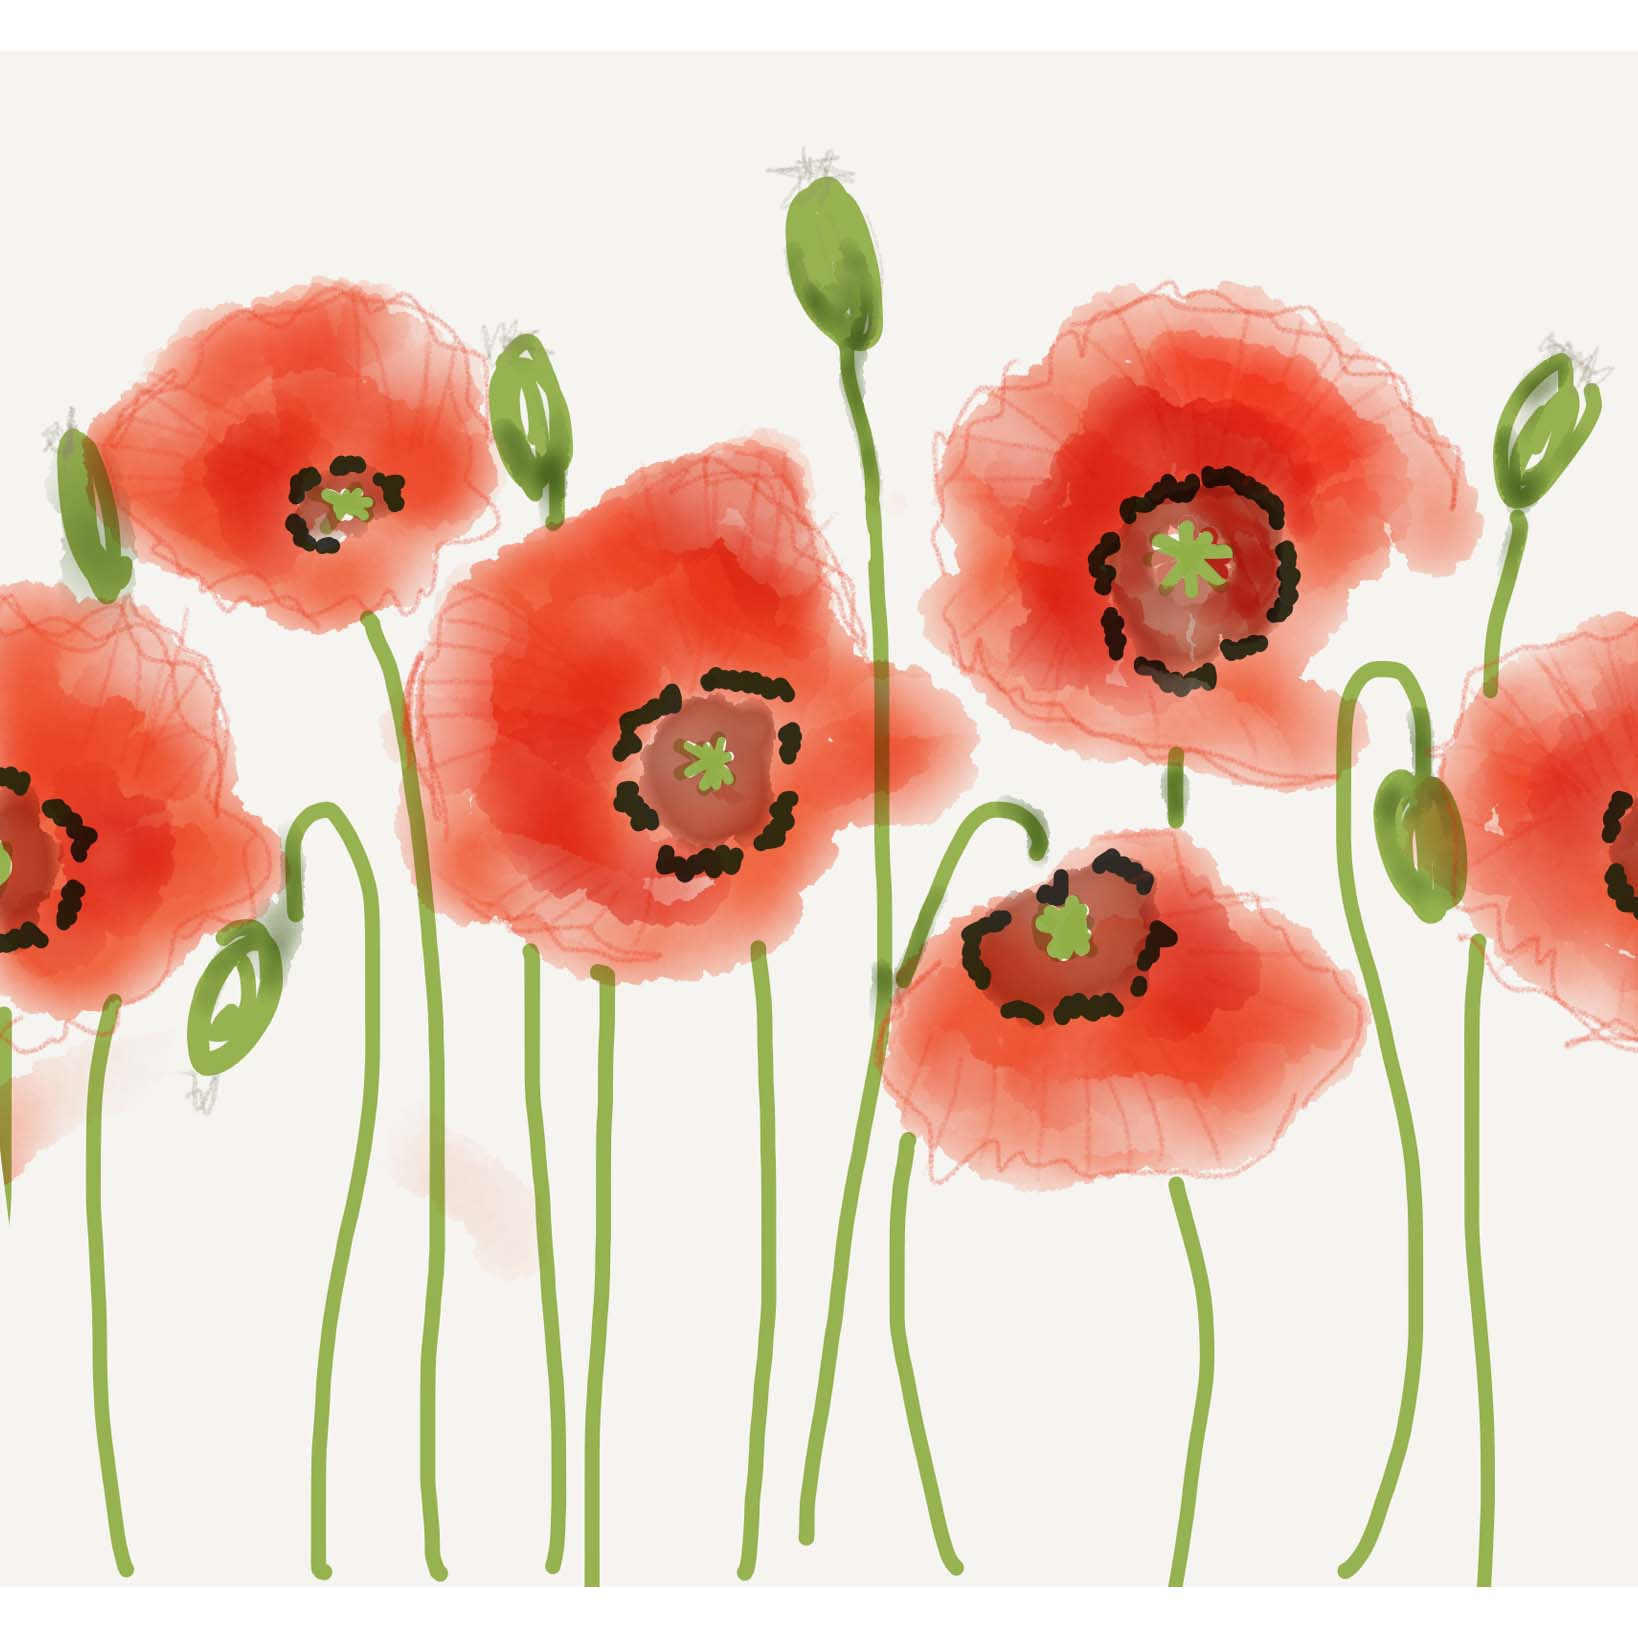 poppies-drawing-07-11-2016